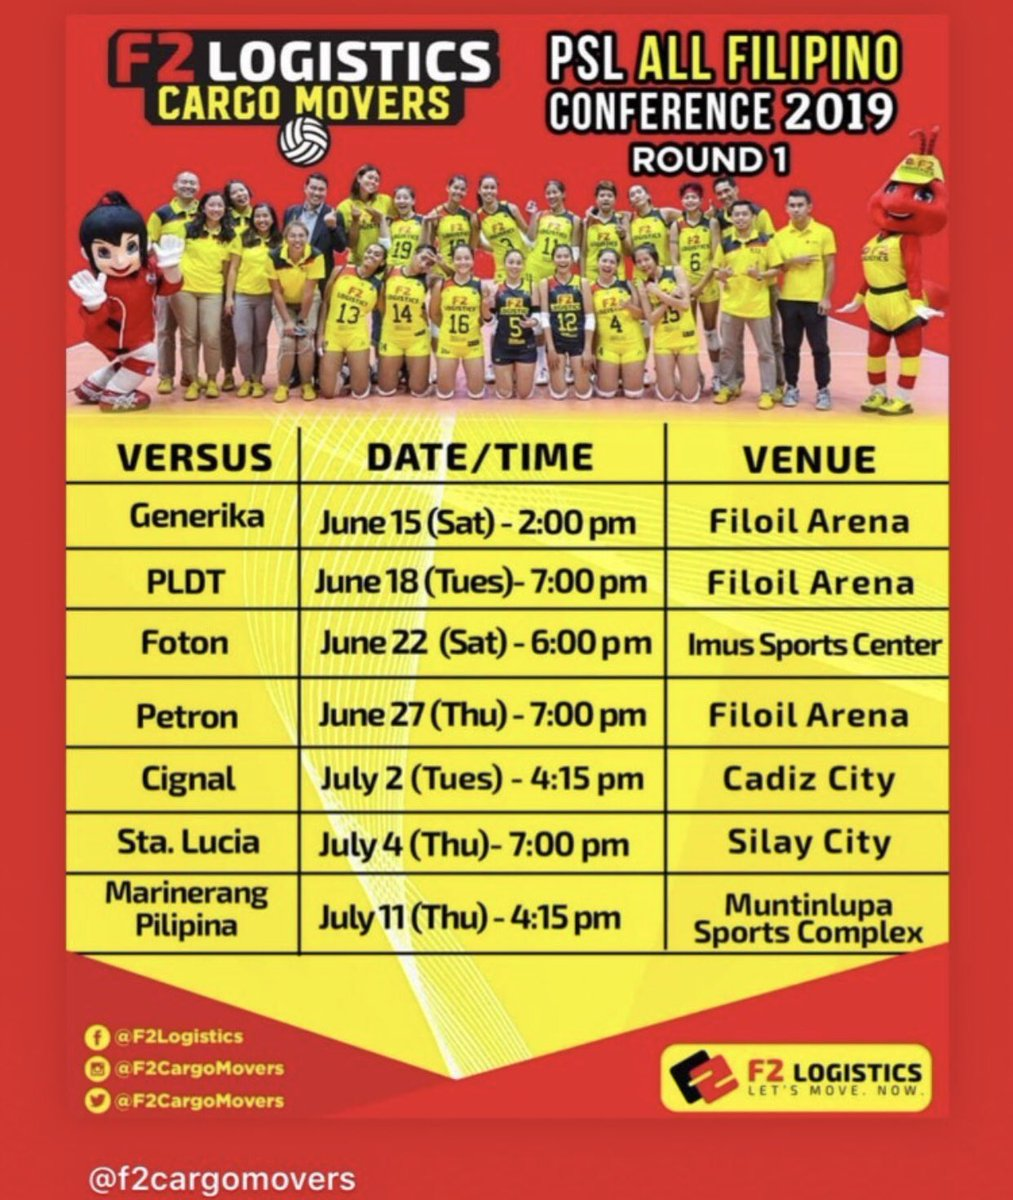 F2 Cargo Movers 1st round Schedule for PSL AFC 2019   #PSLAFC #PSLAFC2019 @SuperLigaPH<br>http://pic.twitter.com/8bM6UF22un